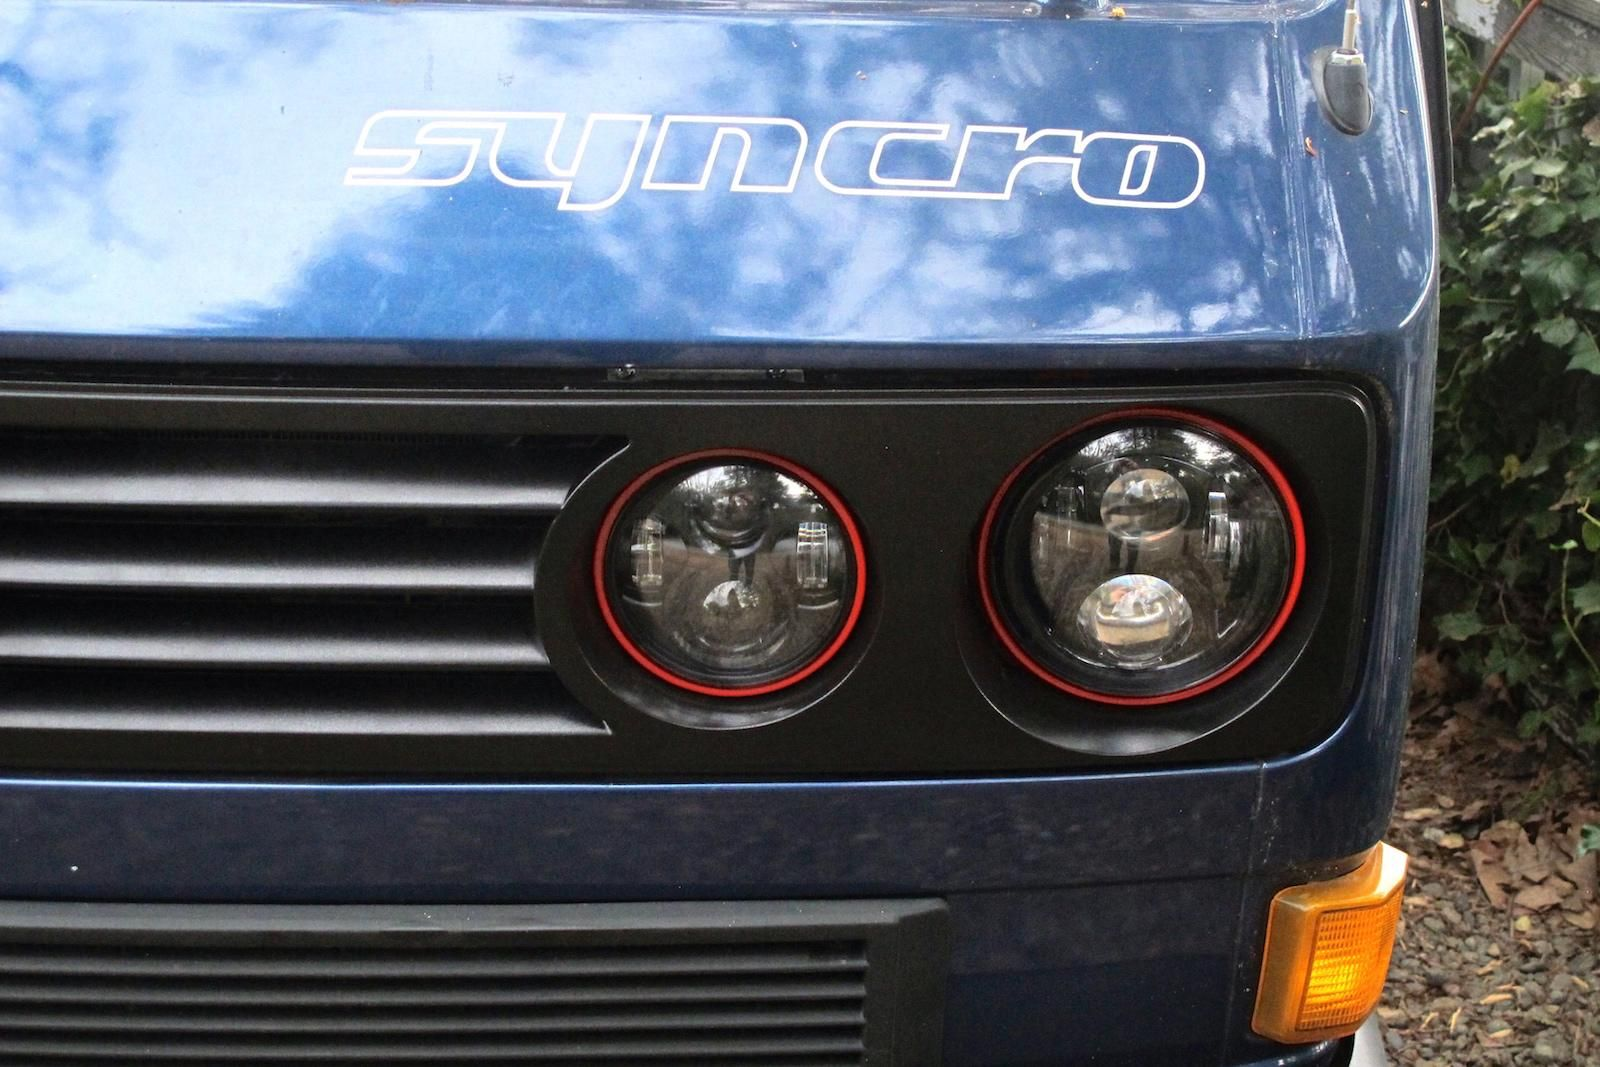 Image May Have Been Reduced In Size Click Image To View Fullscreen Volkswagen Vw Bus T3 Vw Syncro